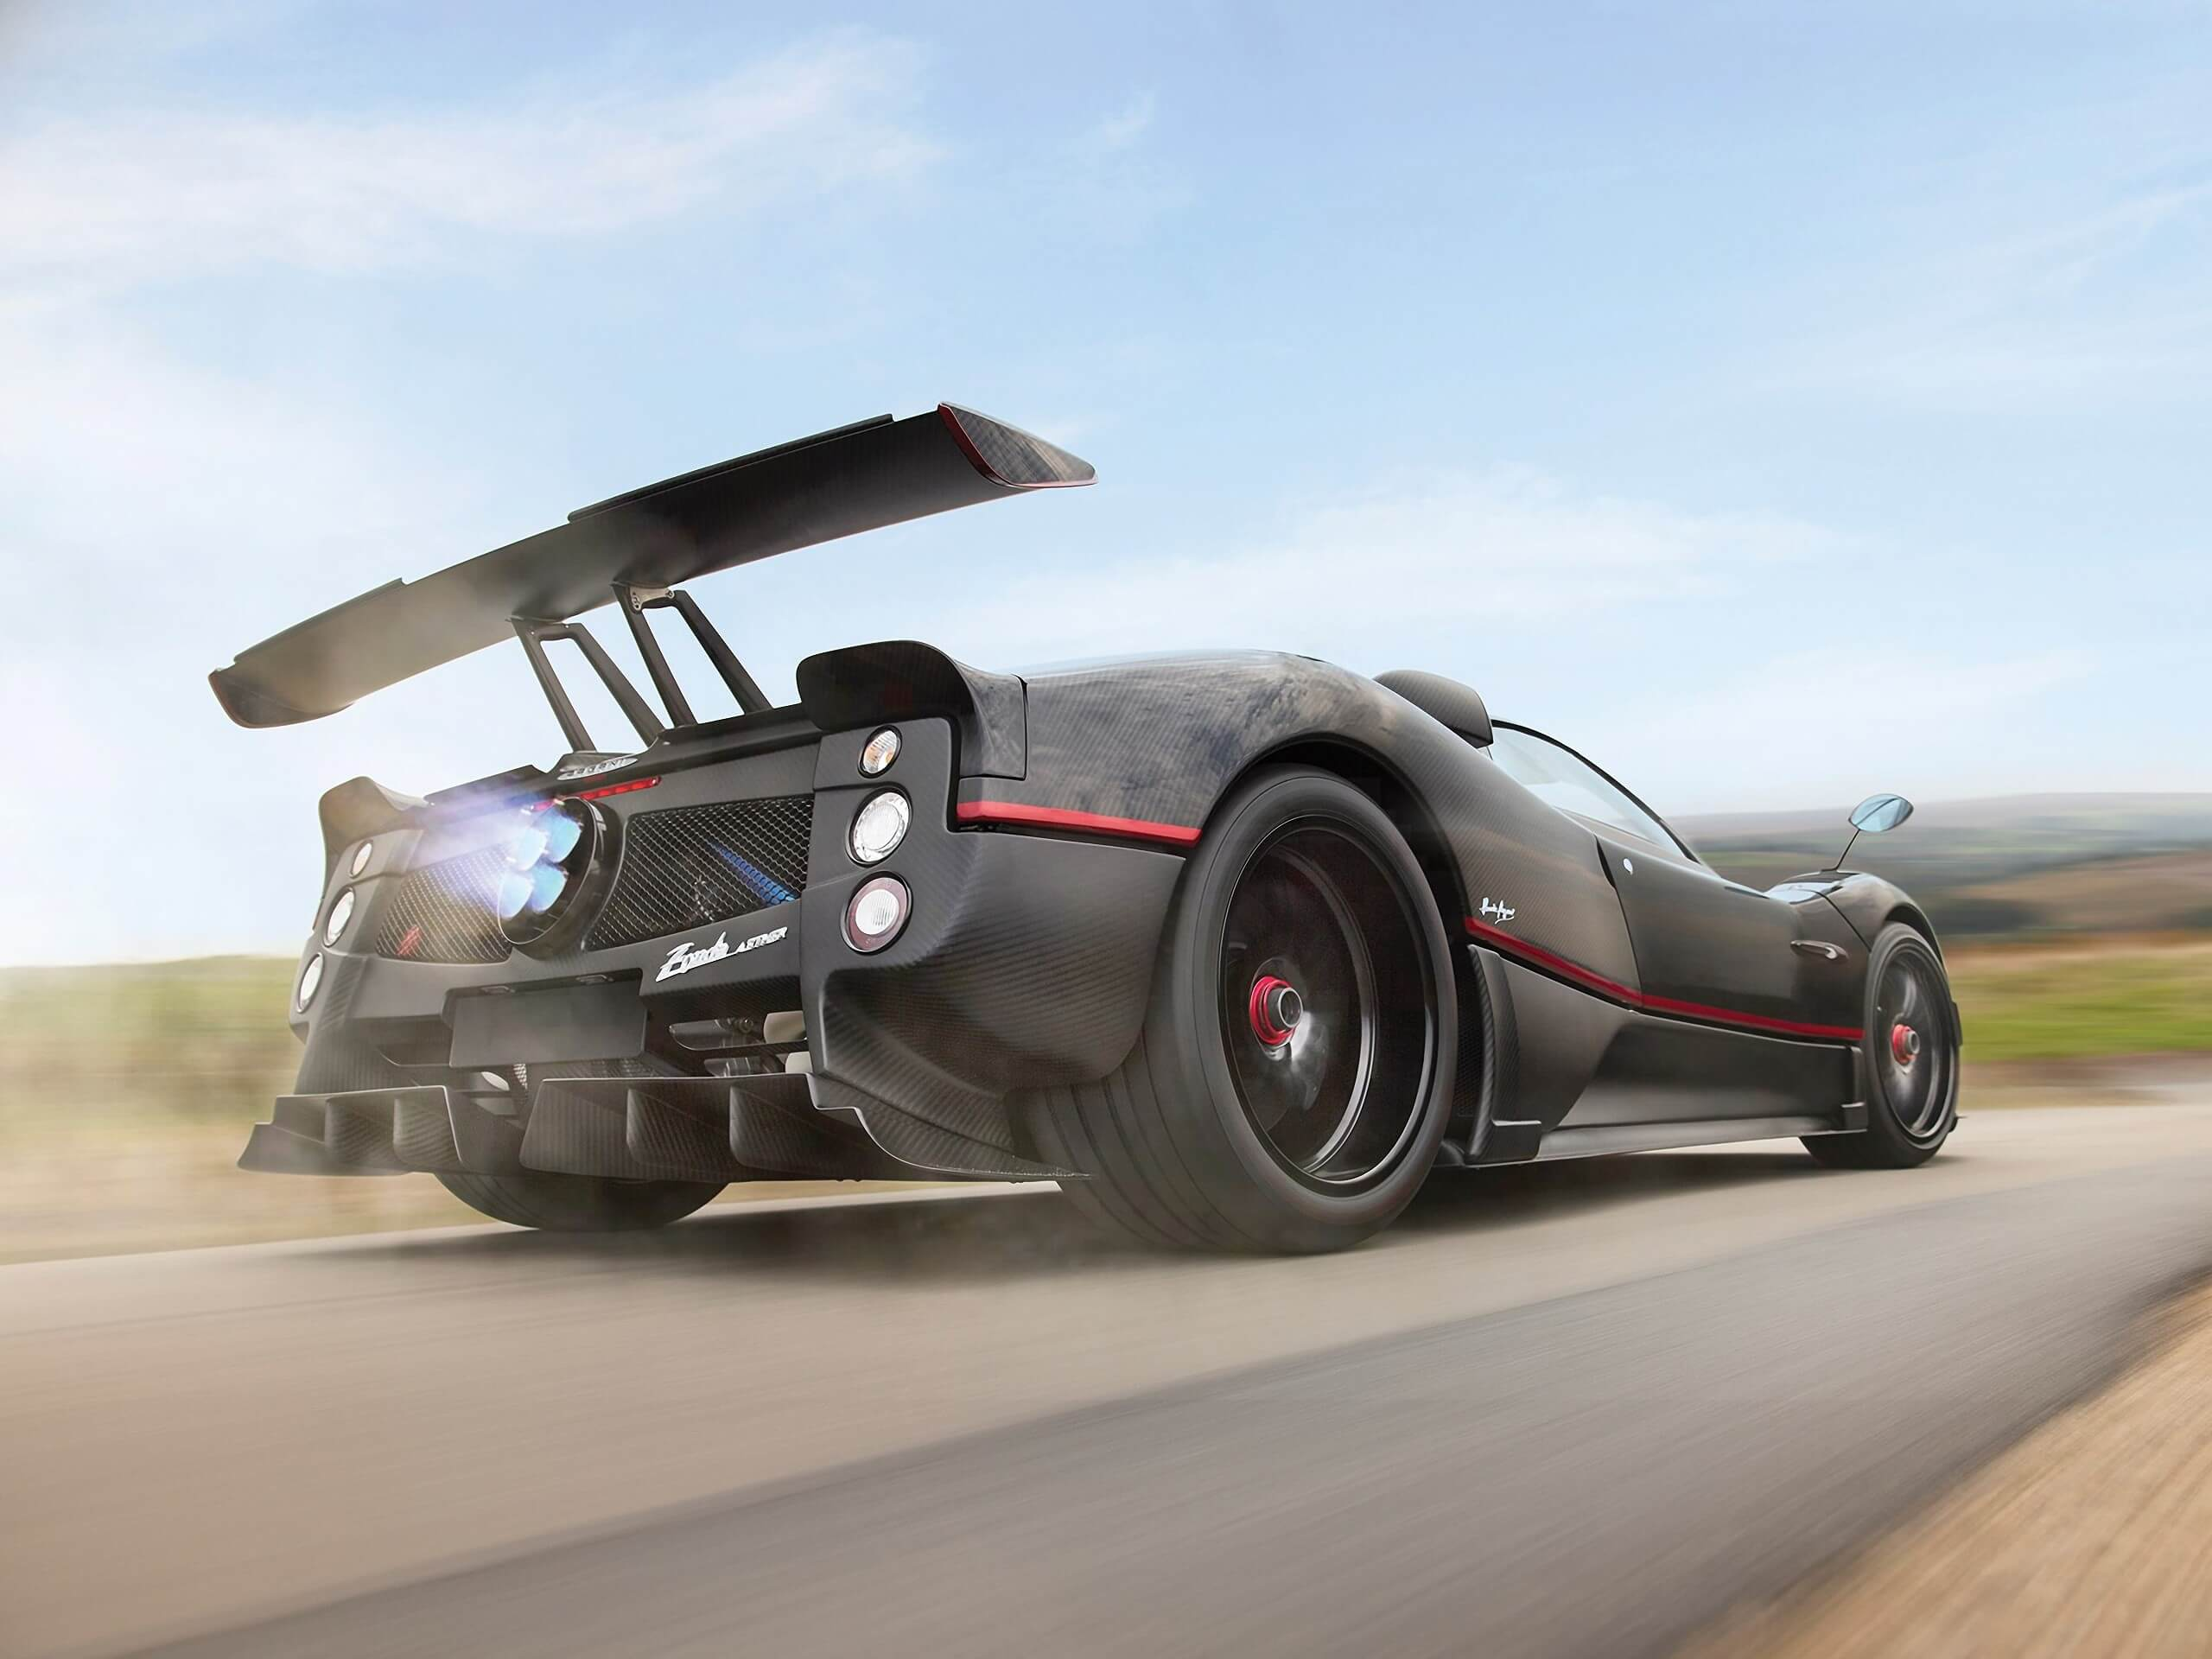 The unique supercar just went under the hammer at Sotheby's, fetching $682,000 more than the boldest prediction of $5,500,000. This makes it Zonda's single most expensive auction sale.